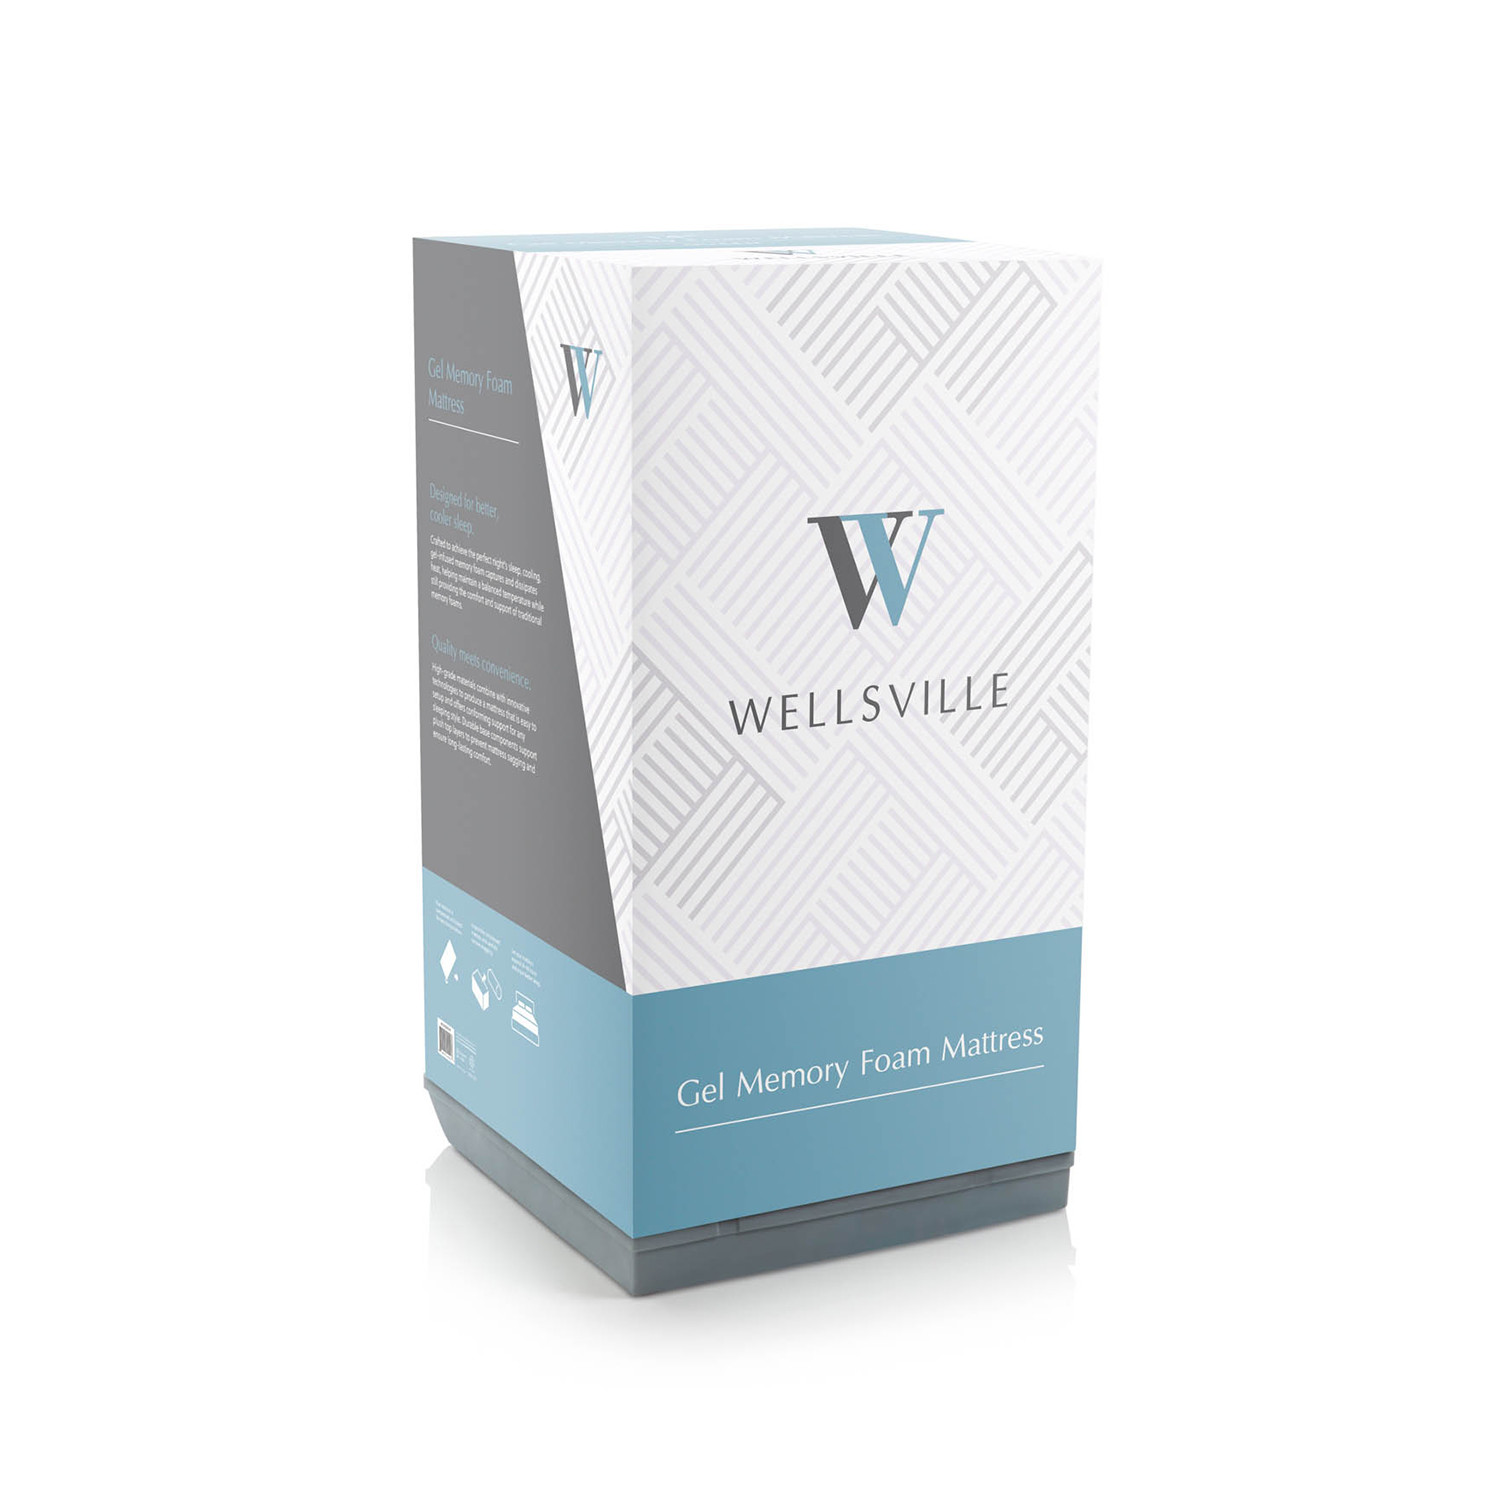 Wellsville Mattress Full Hi Tech Pillows Amp Bedding